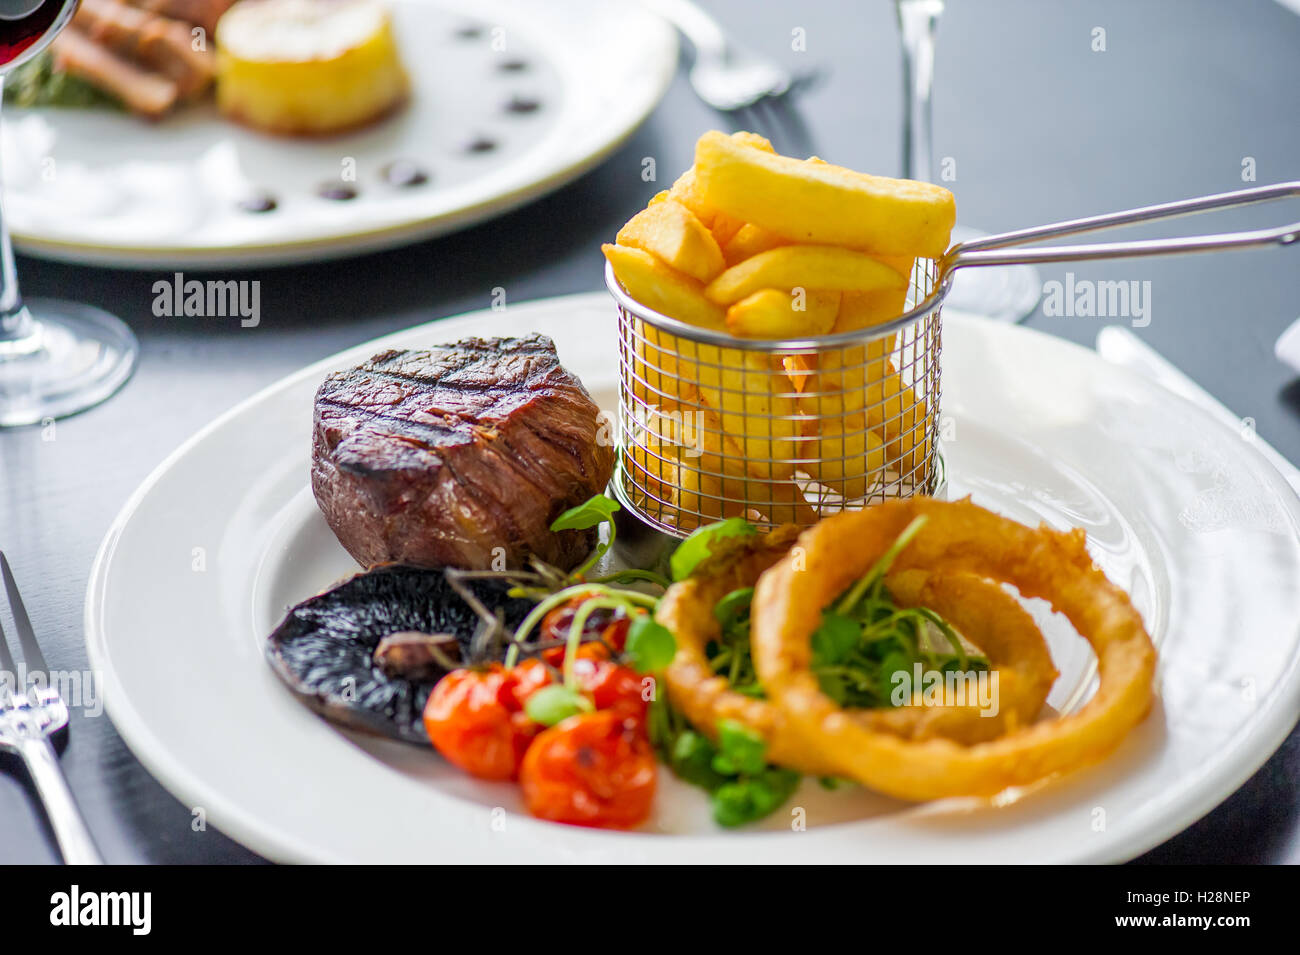 A fillet steak with onion rings and chips - Stock Image